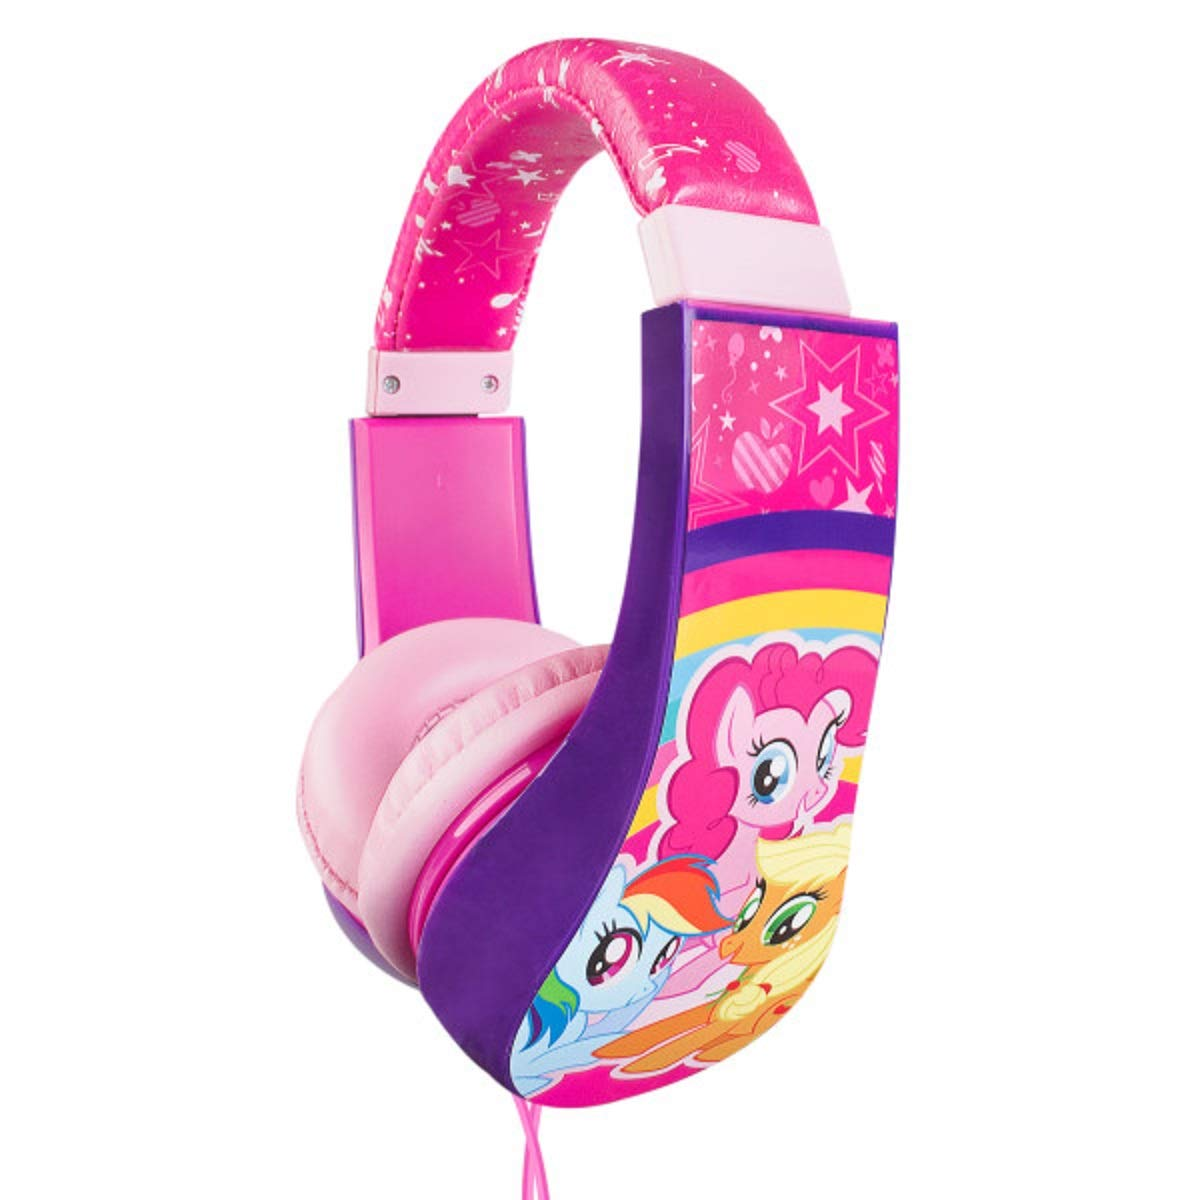 My Little Pony Kid Safe Over the Ear Cushioned Headphone w/Volume Limiter, 3.5MM Stereo Jack Pink Rainbow Horses Equestrian by Sakar